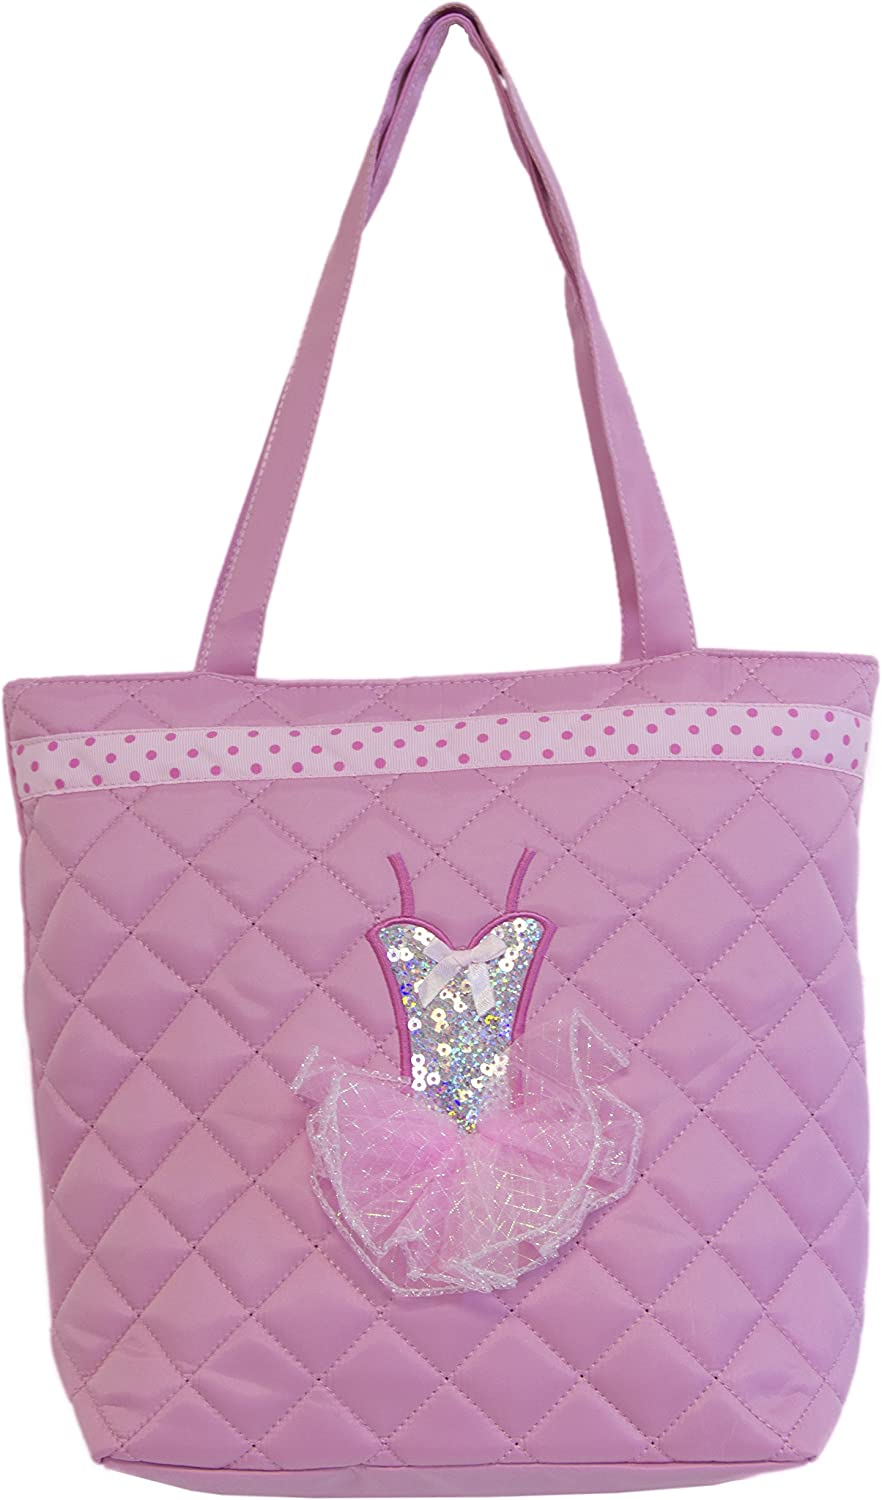 Light Pink Quilted Tote Bag